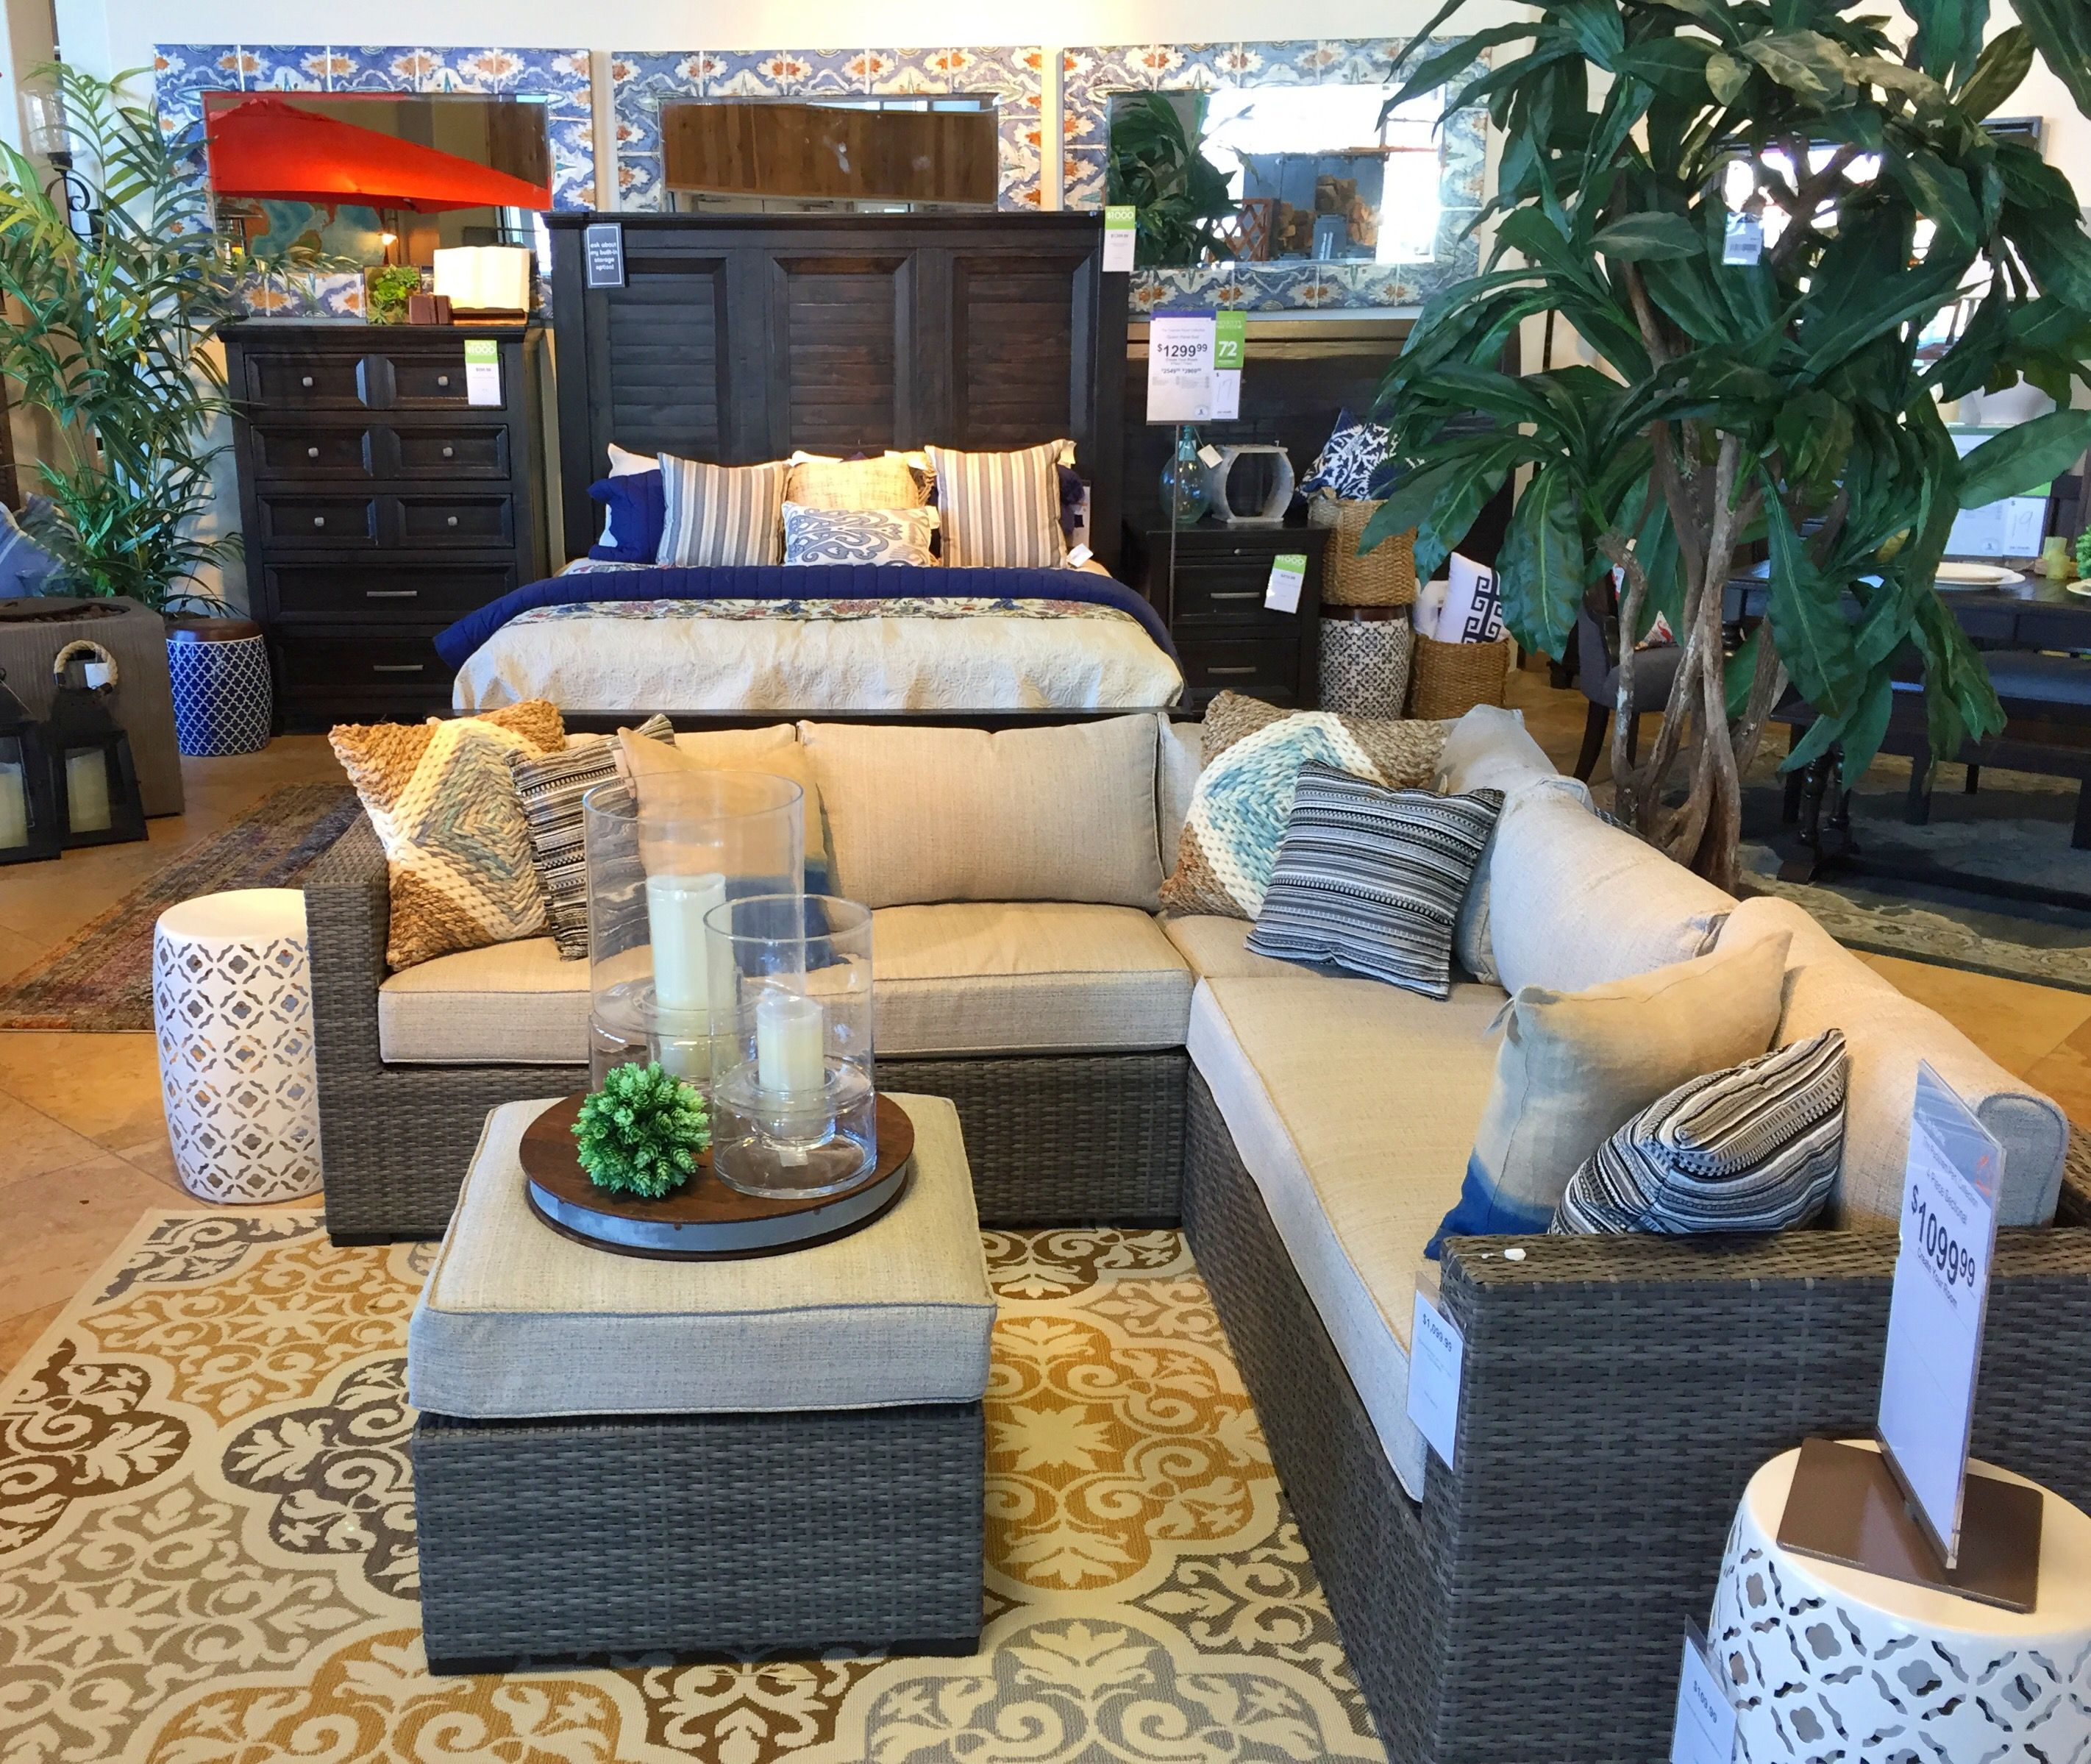 Avon Furniture Outdoor Outdoors Home Furnishings Life